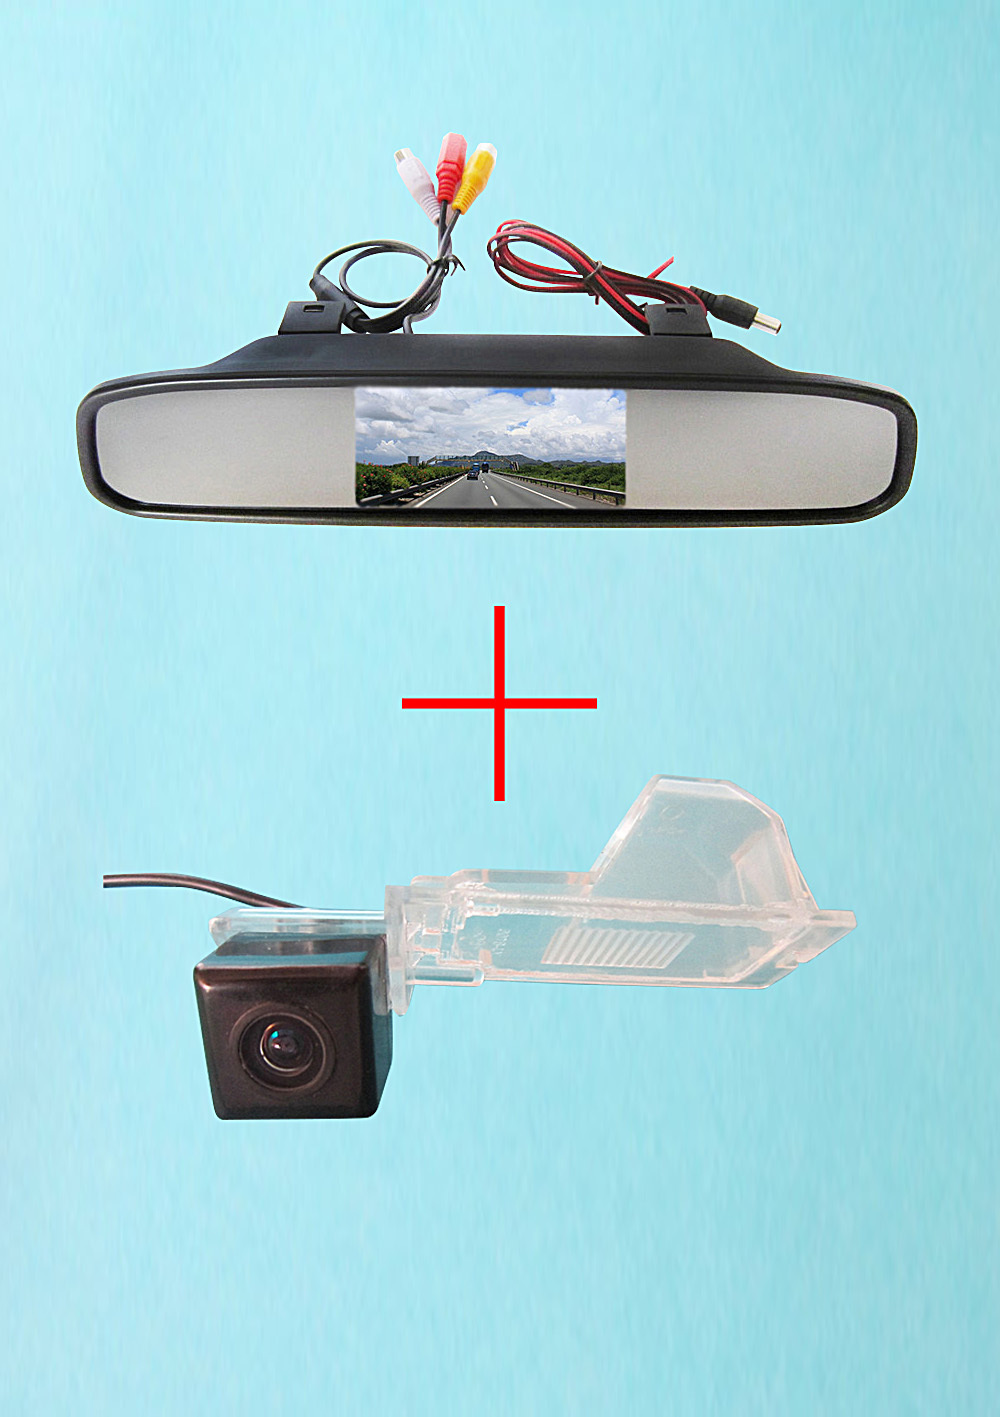 color ccd chip car chip rear view camera for ford edge. Black Bedroom Furniture Sets. Home Design Ideas